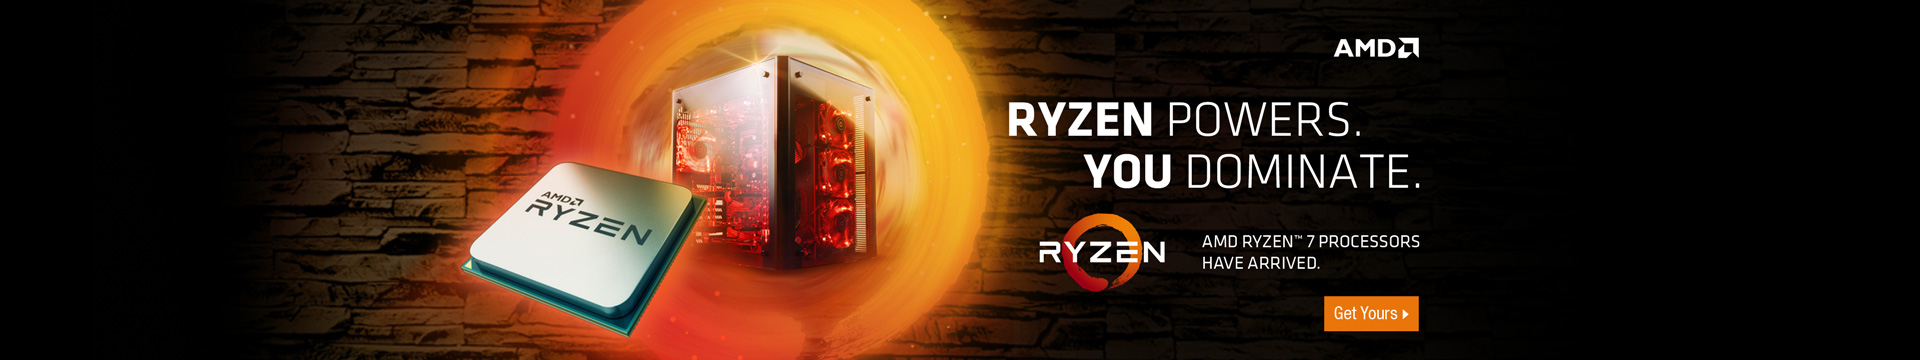 AMD Ryzen Processor Launch